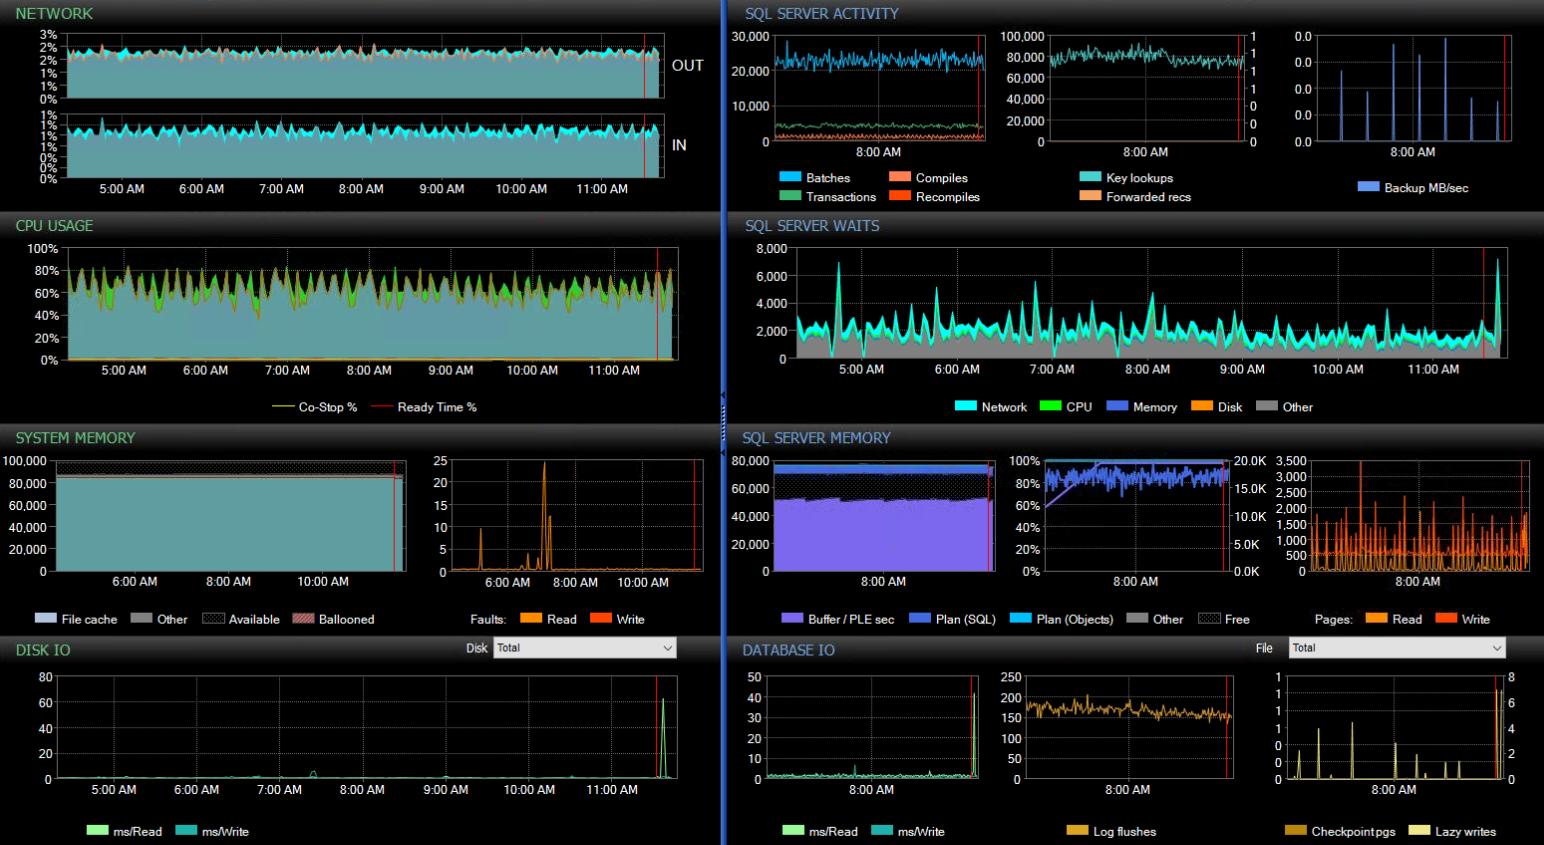 The SentryOne dashboard showing how its own SQL Server database performs while monitoring over 800 targets, running on a virtual machine with only 16 CPUs and 88GB of RAM.